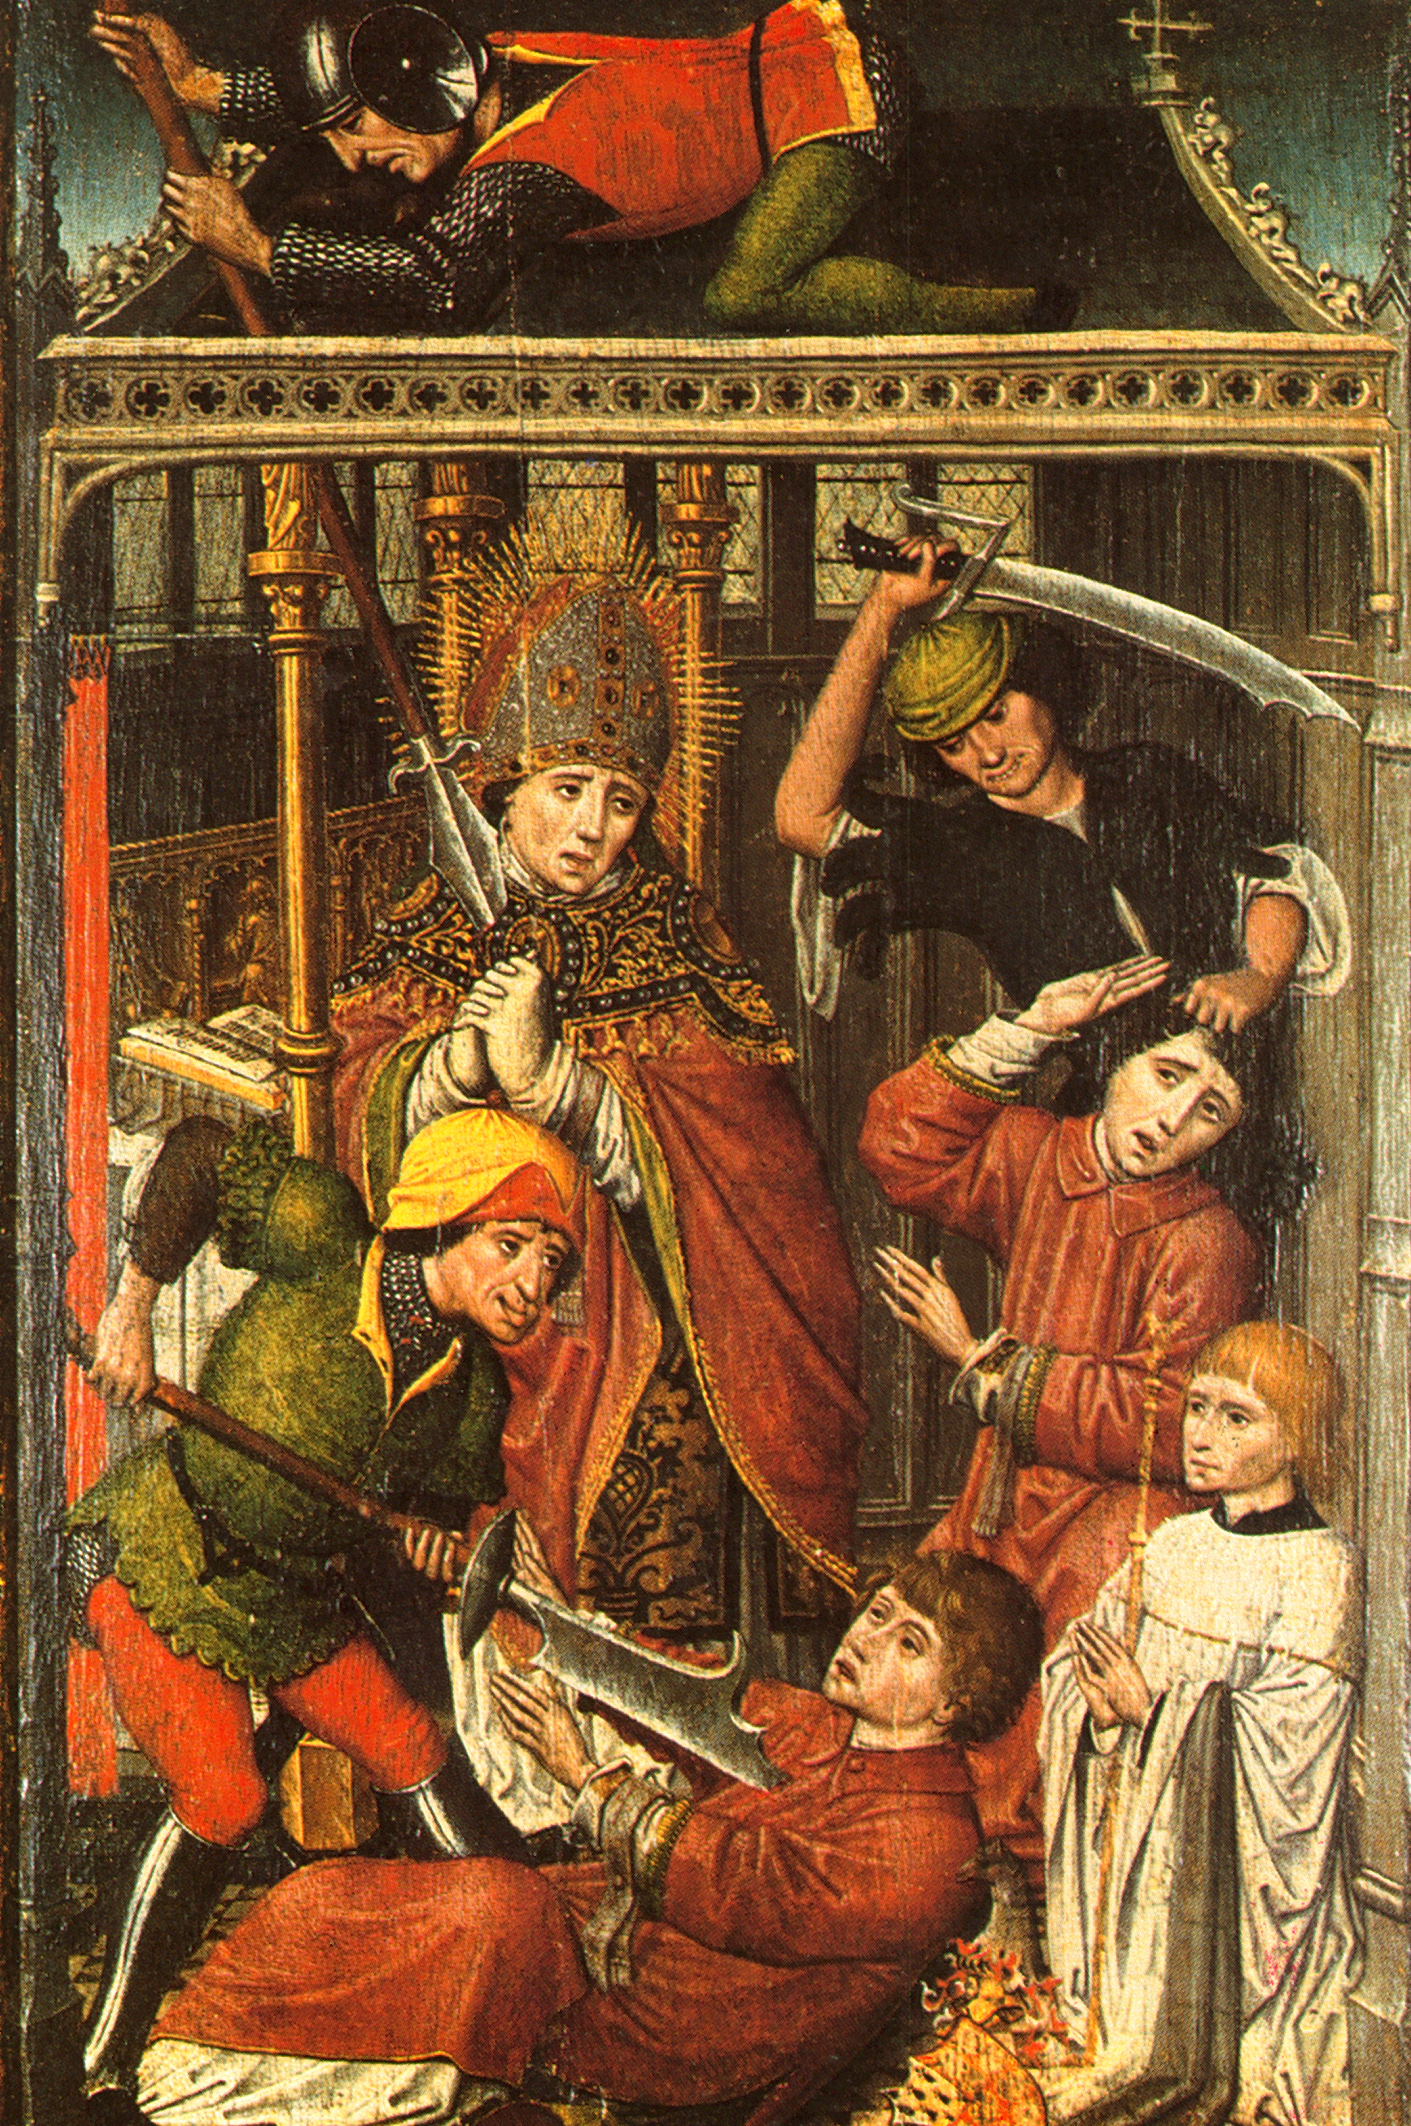 Martyrdom of St. Lambert (in the Bishops mitre); taken from Wikipedia